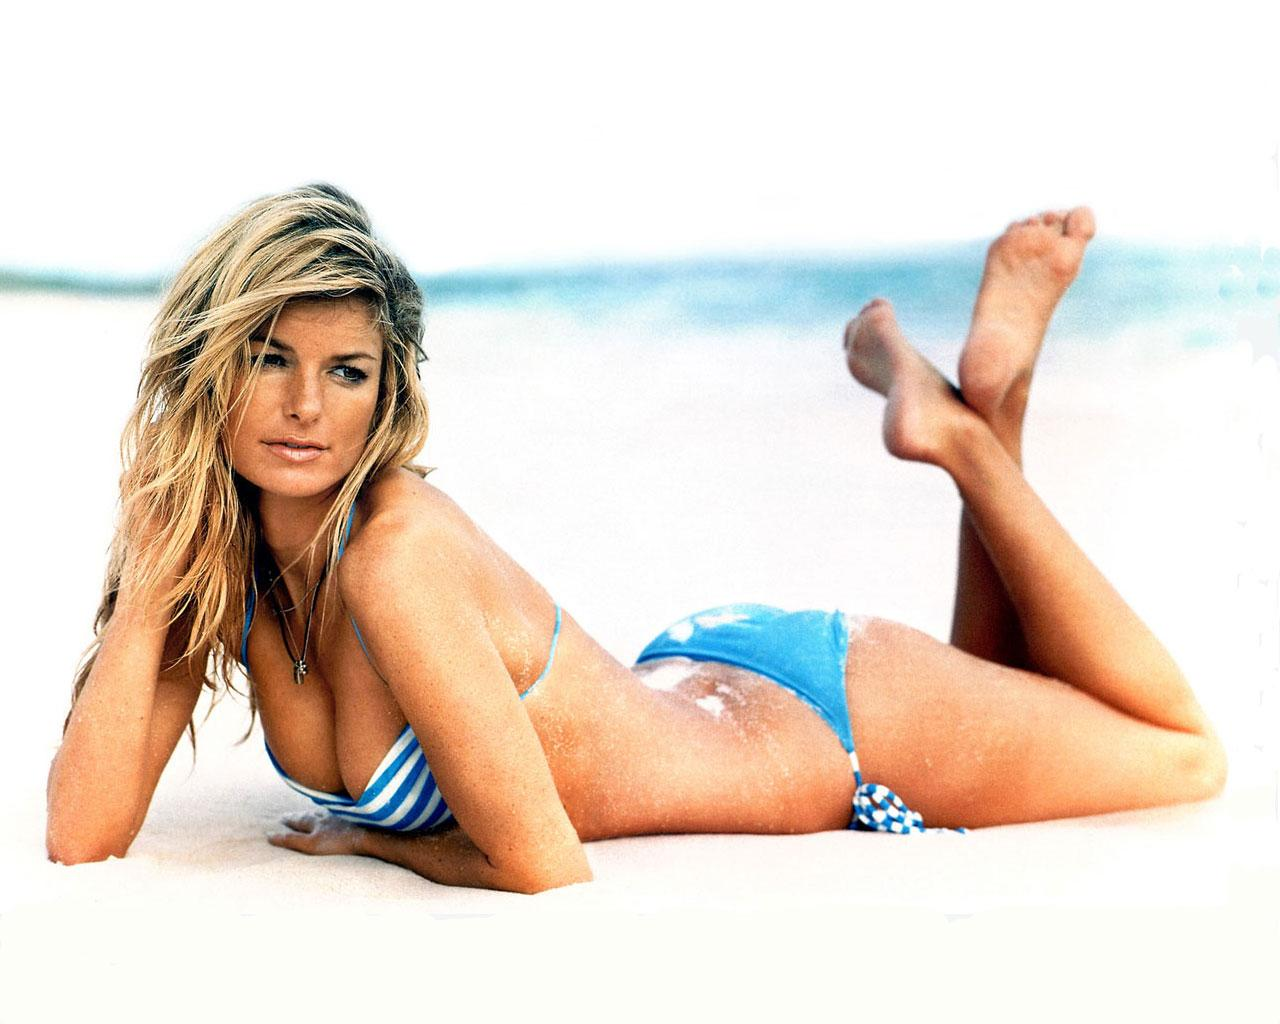 Marisa Miller Hot Blue Bikini On Sands - Marisa Miller Hot Blue Bikini On Sands